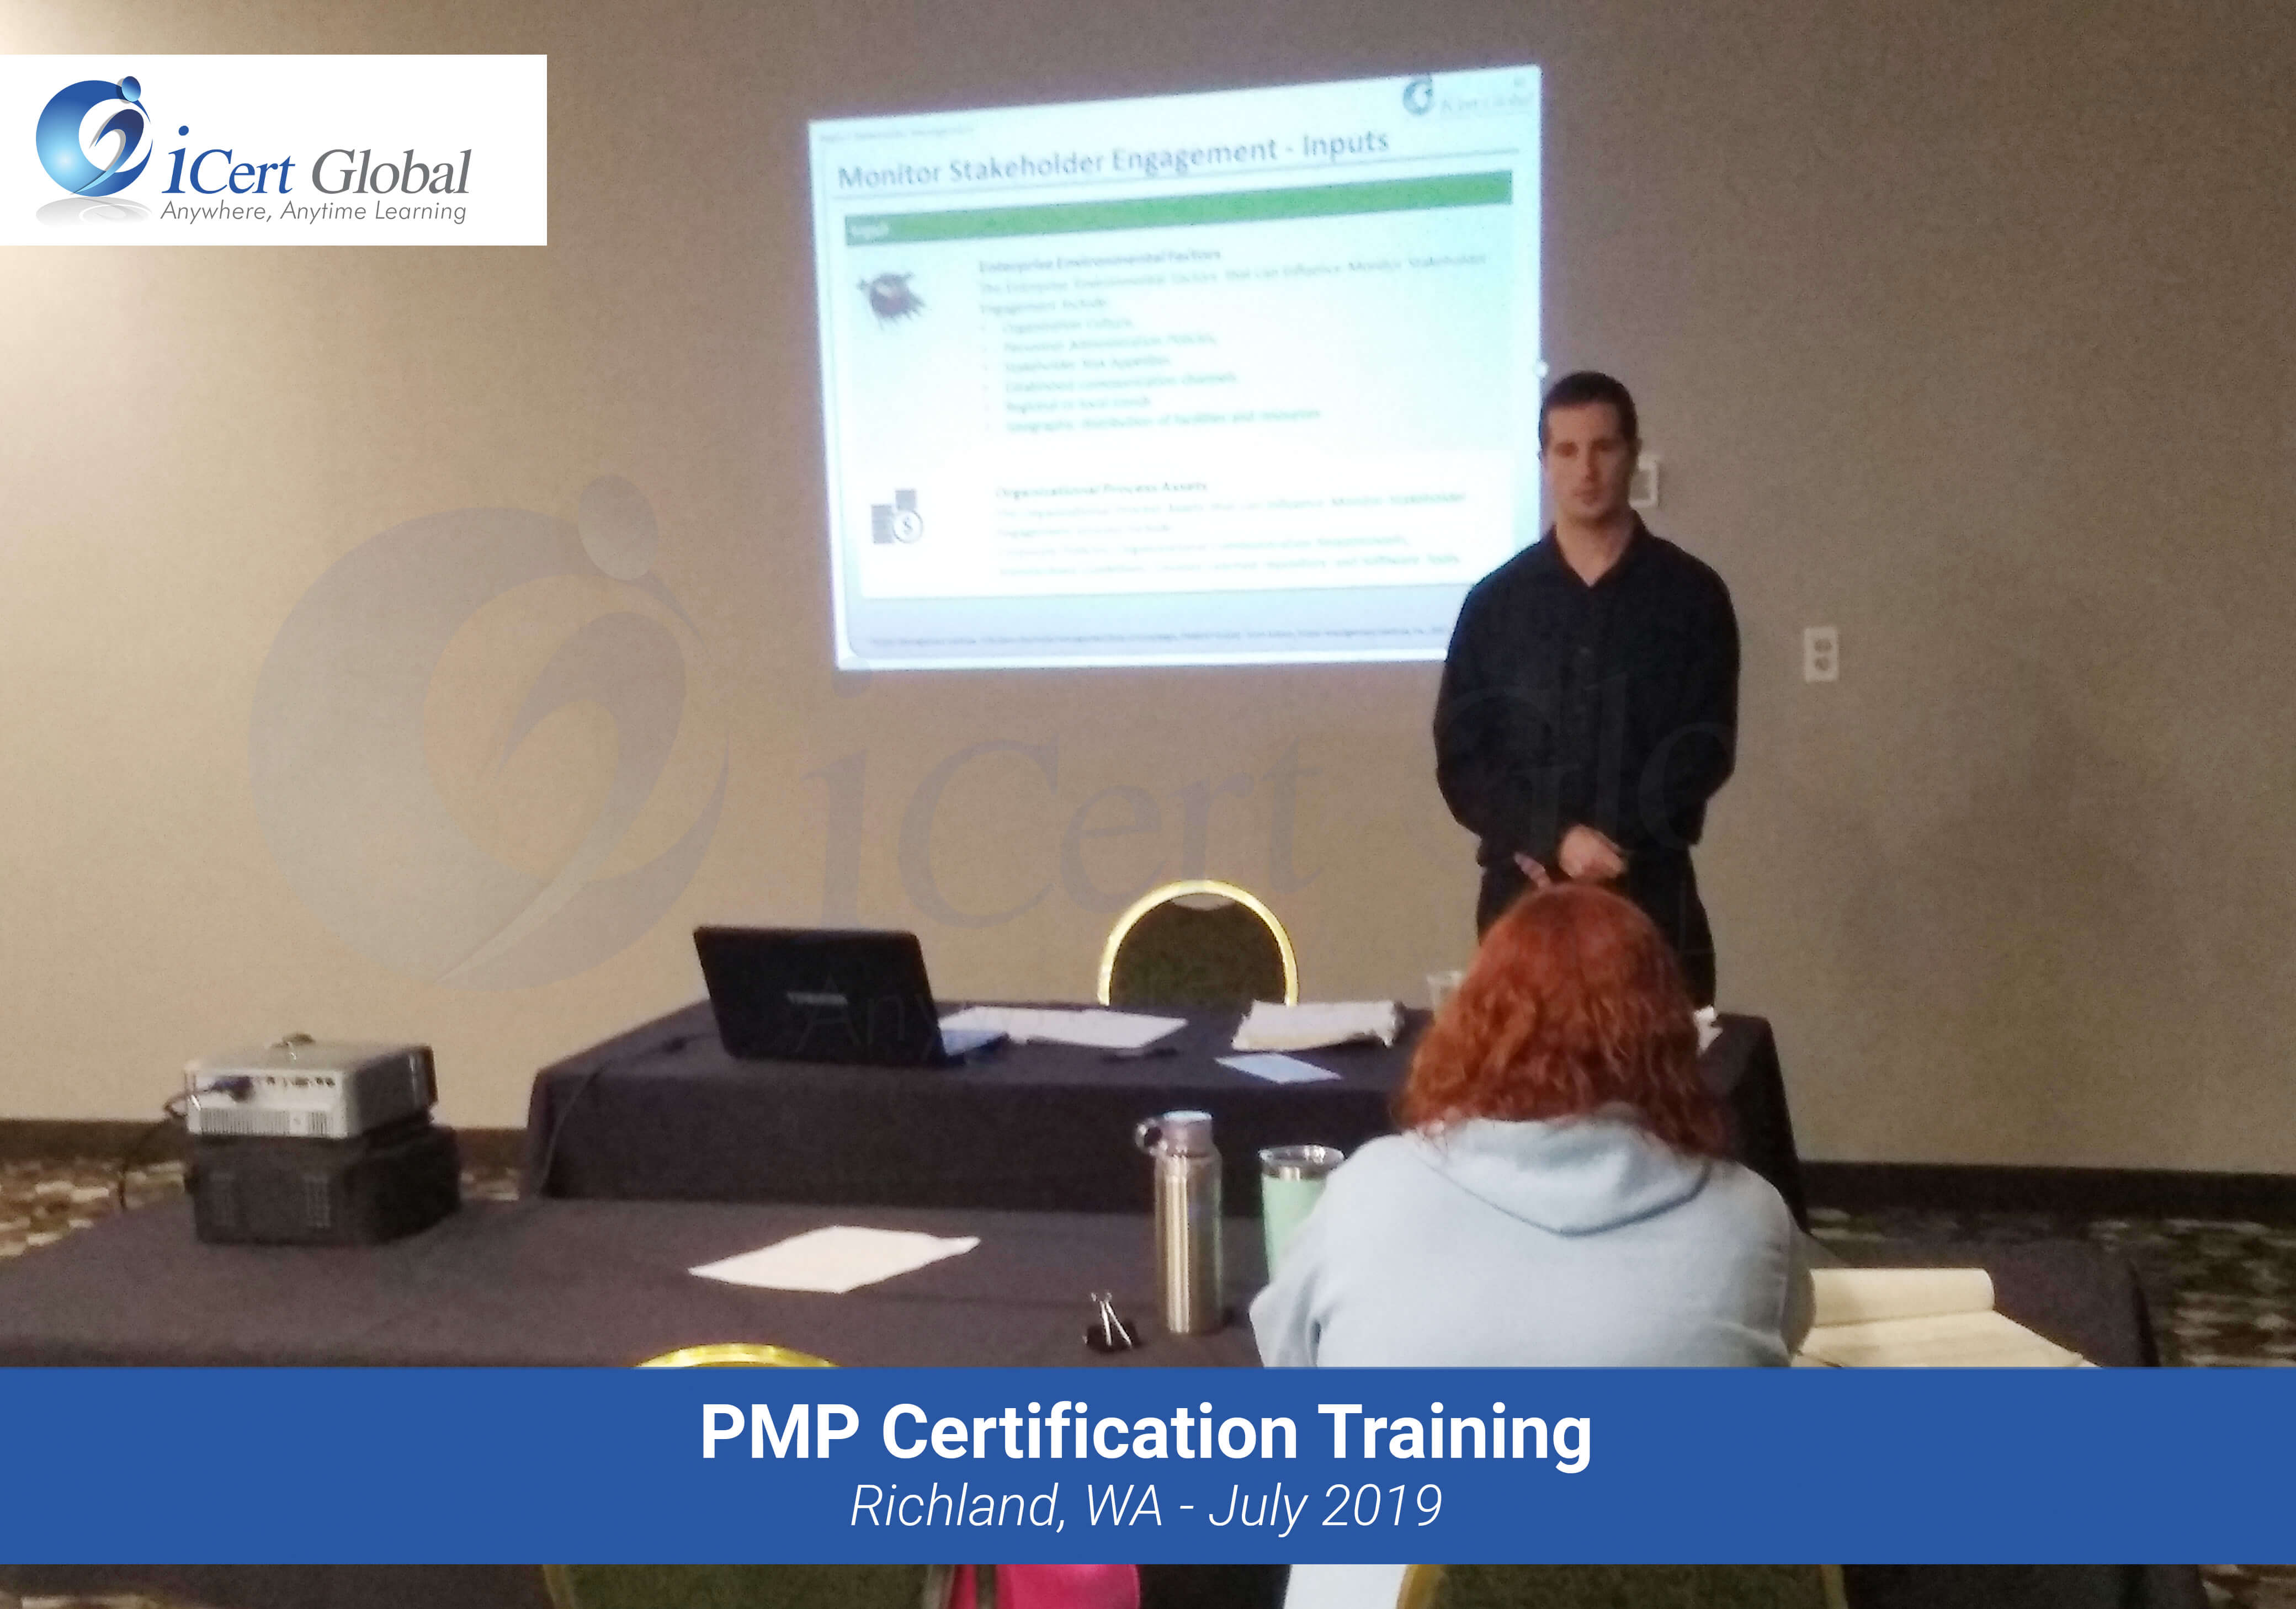 PMP Certification Exam Prep Training Course in Richland, WA in July 2019